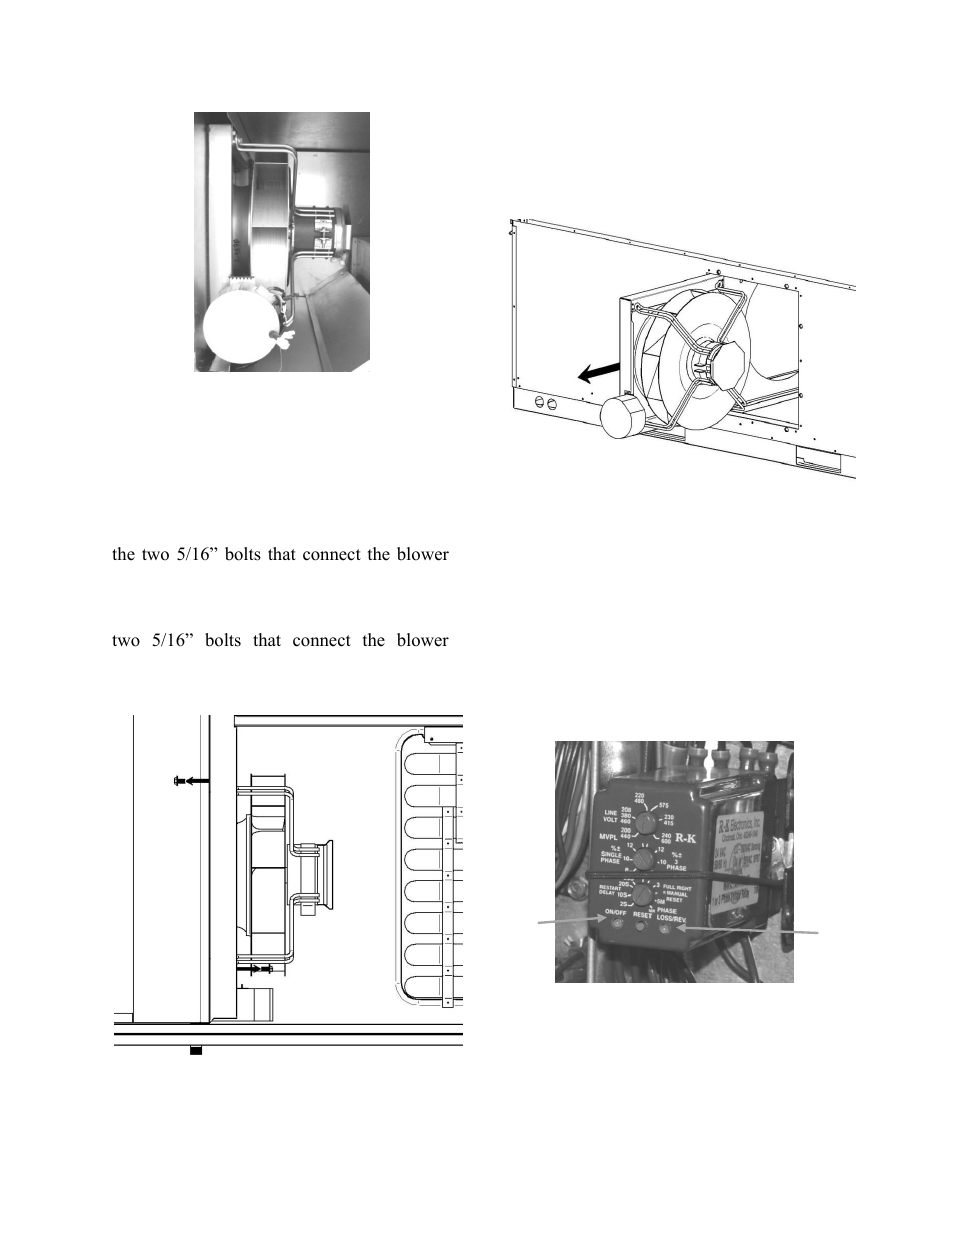 aaon rq 006 page68 wiring diagram k01299 aaon aaon rn catalog \u2022 indy500 co  at gsmx.co